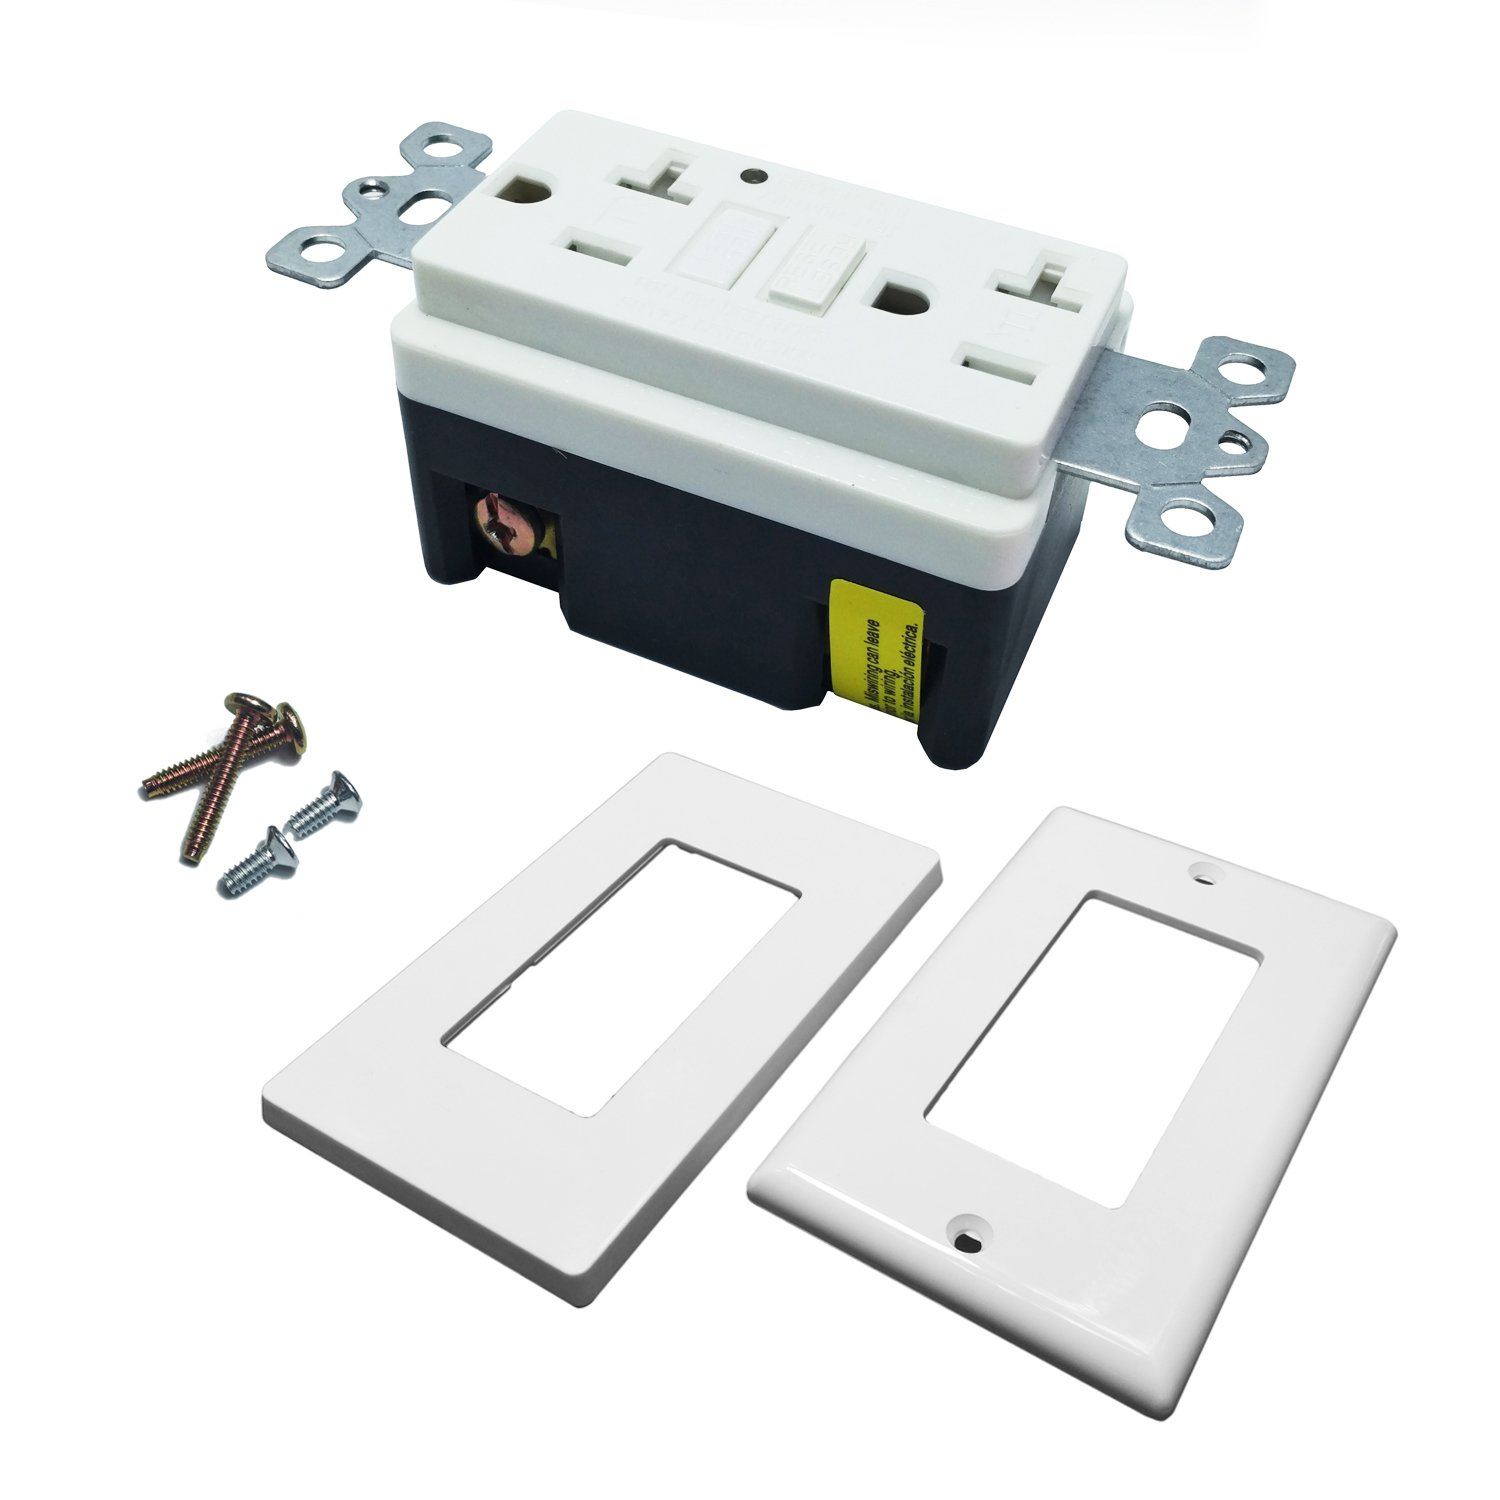 Seckatech Gfci Outlet 20a 02 20 Amp 125v Tamper Resistant Wall Gfi 15 Tr Receptacle Weather Pro Perfect For Your Daily Life Play Its Great Mission